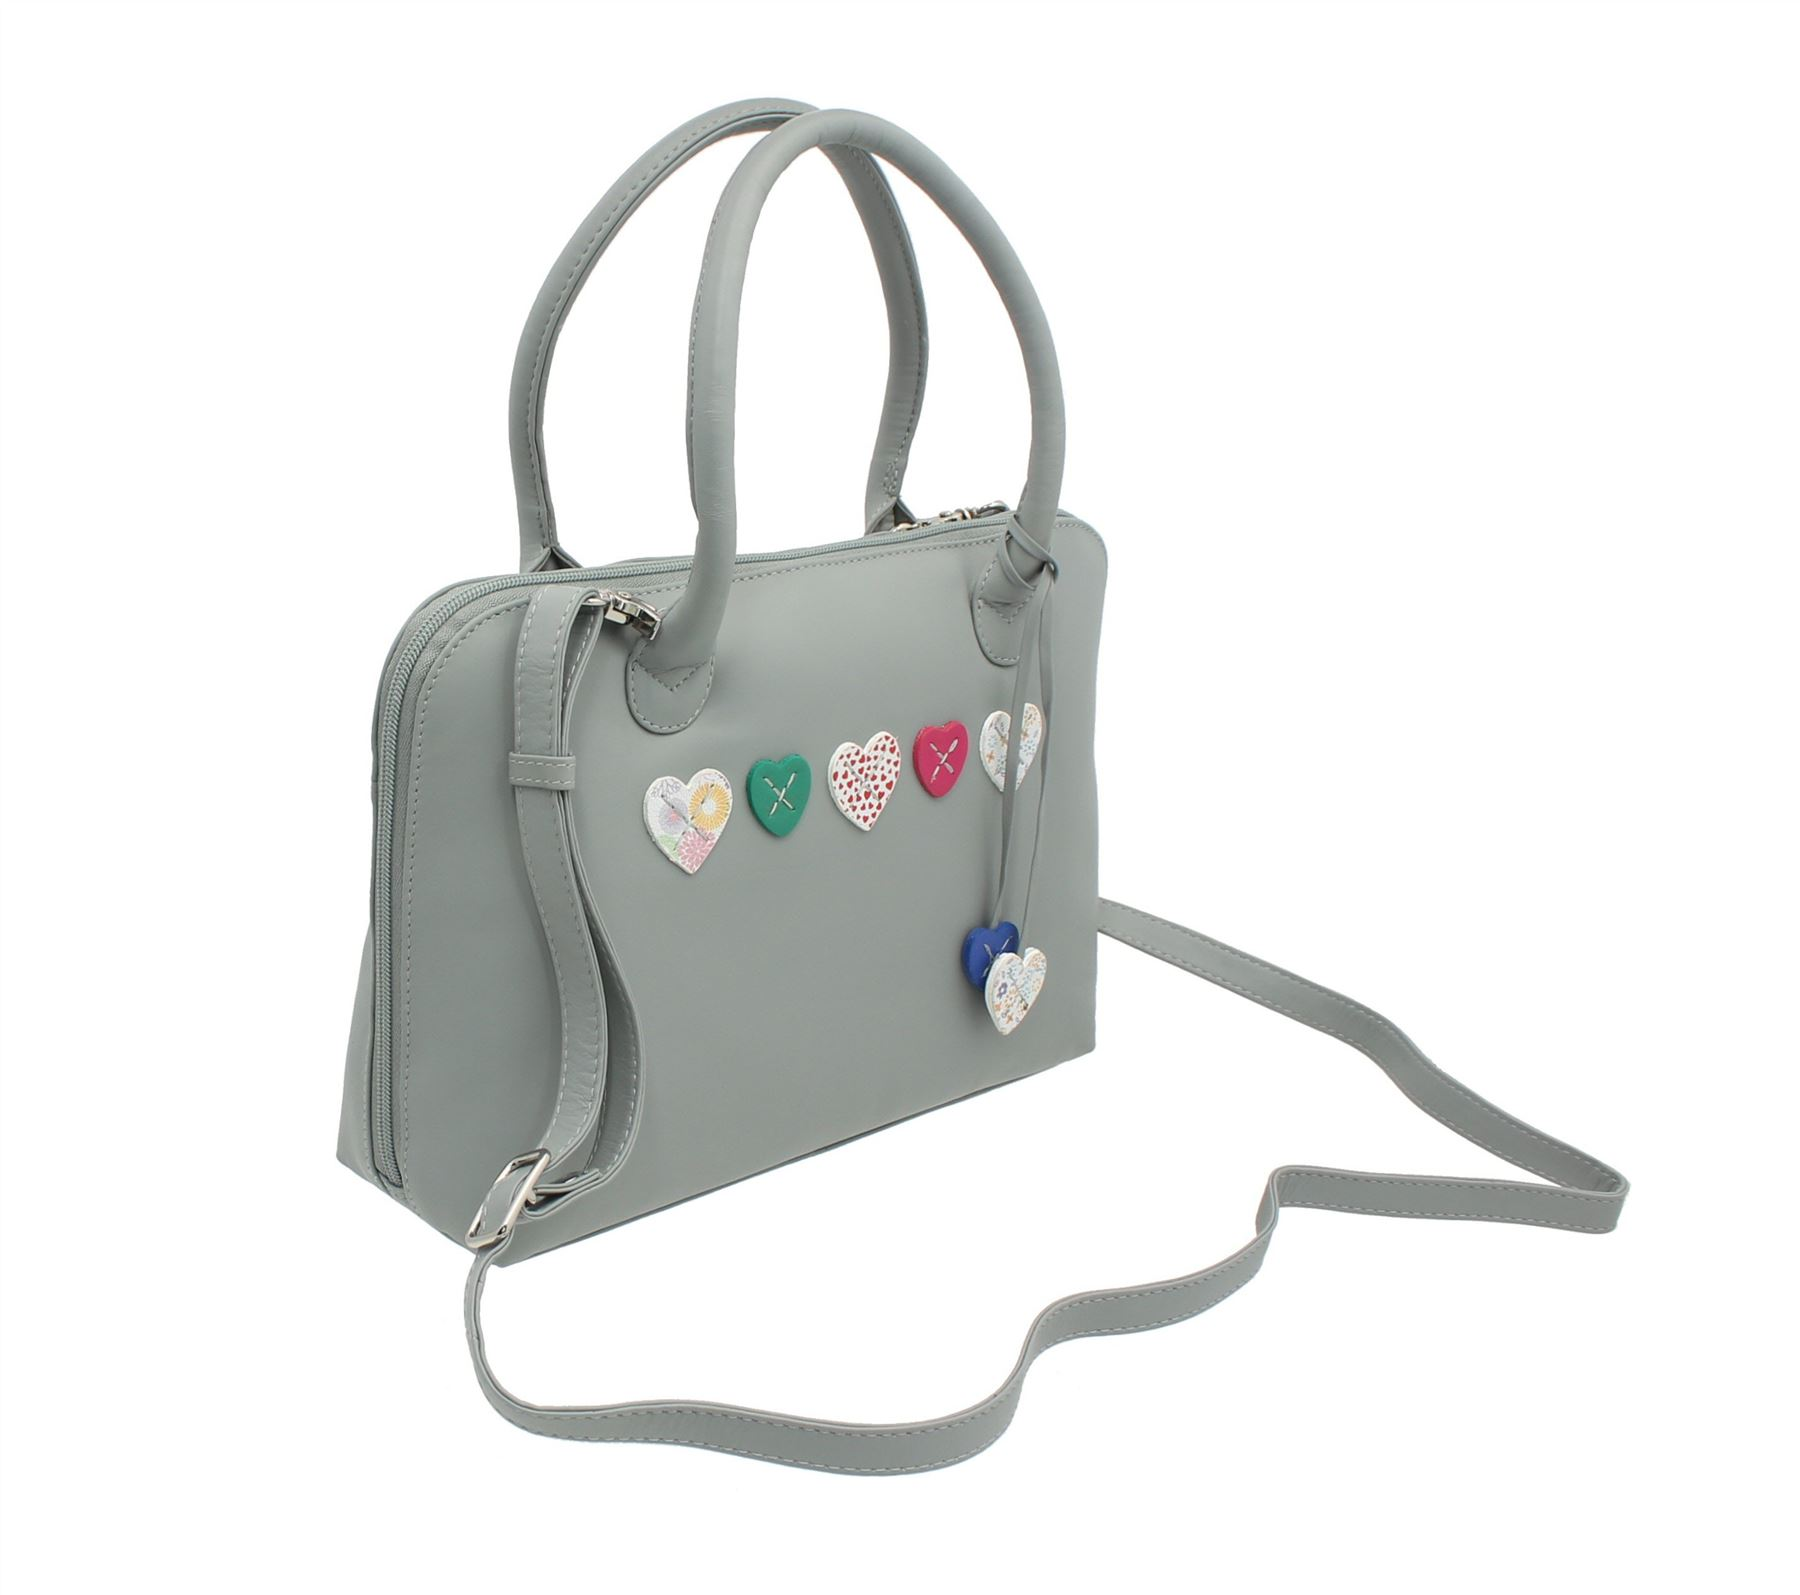 8e2701e6f430 Details about Mala Leather LUCY Collection Soft Leather Grab Bag With  Shoulder Strap 750_30